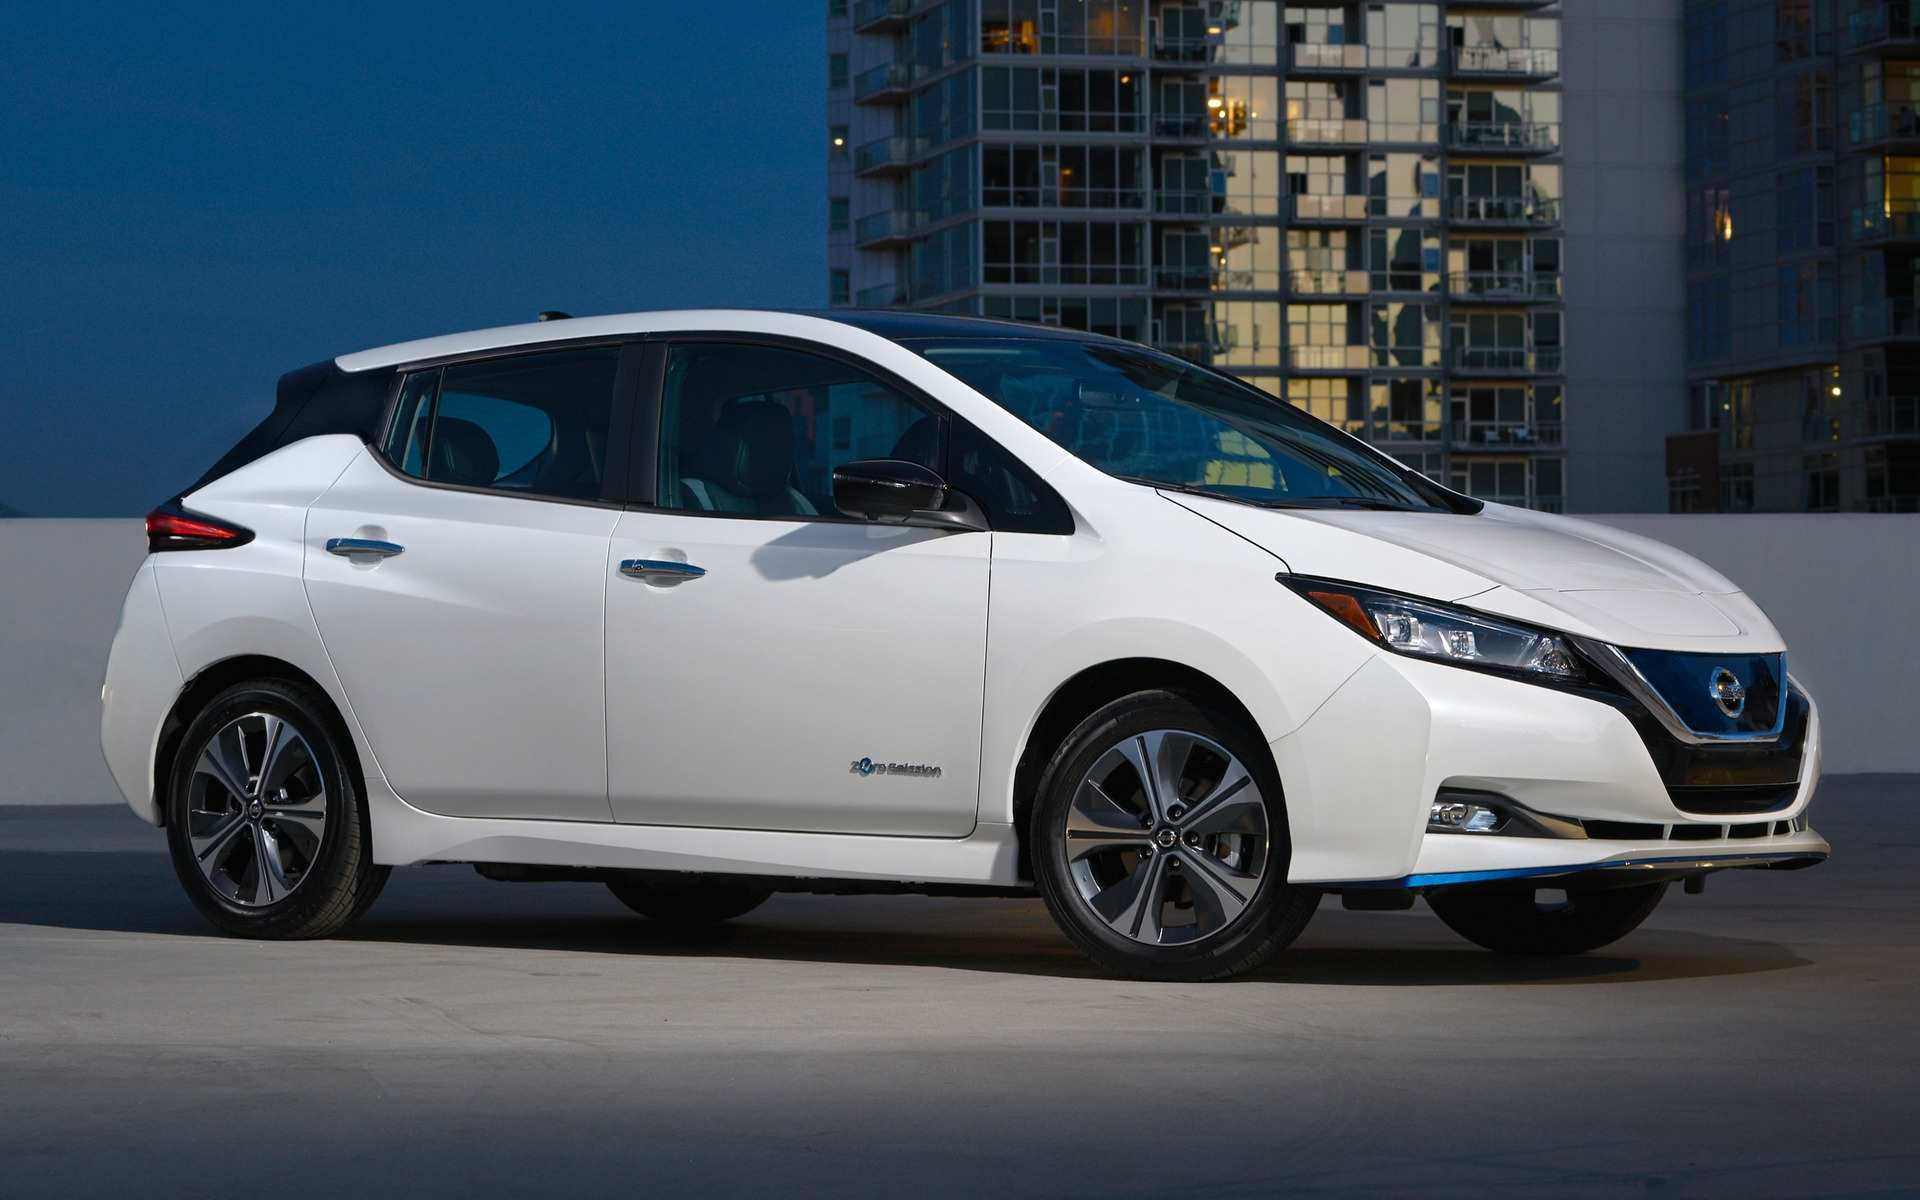 57 Best Review Nissan Leaf Suv 2020 Reviews by Nissan Leaf Suv 2020